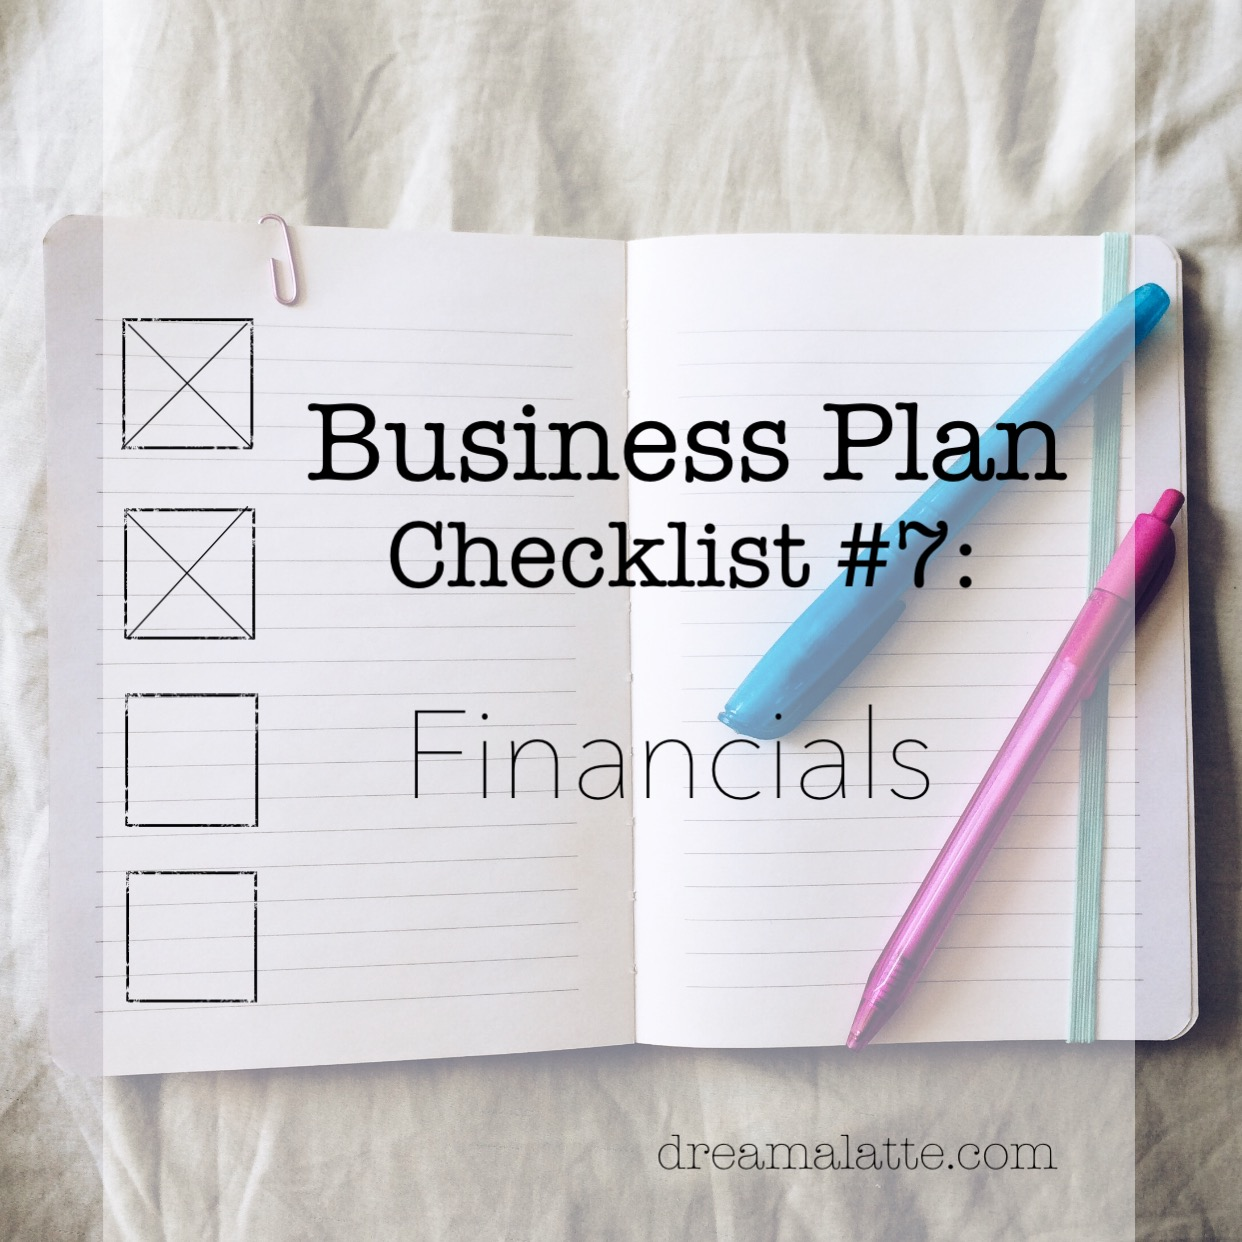 coffee shop business plan financials dream a latte click here for a able dream a latte financials checklist to help outline the financial section of your business plan